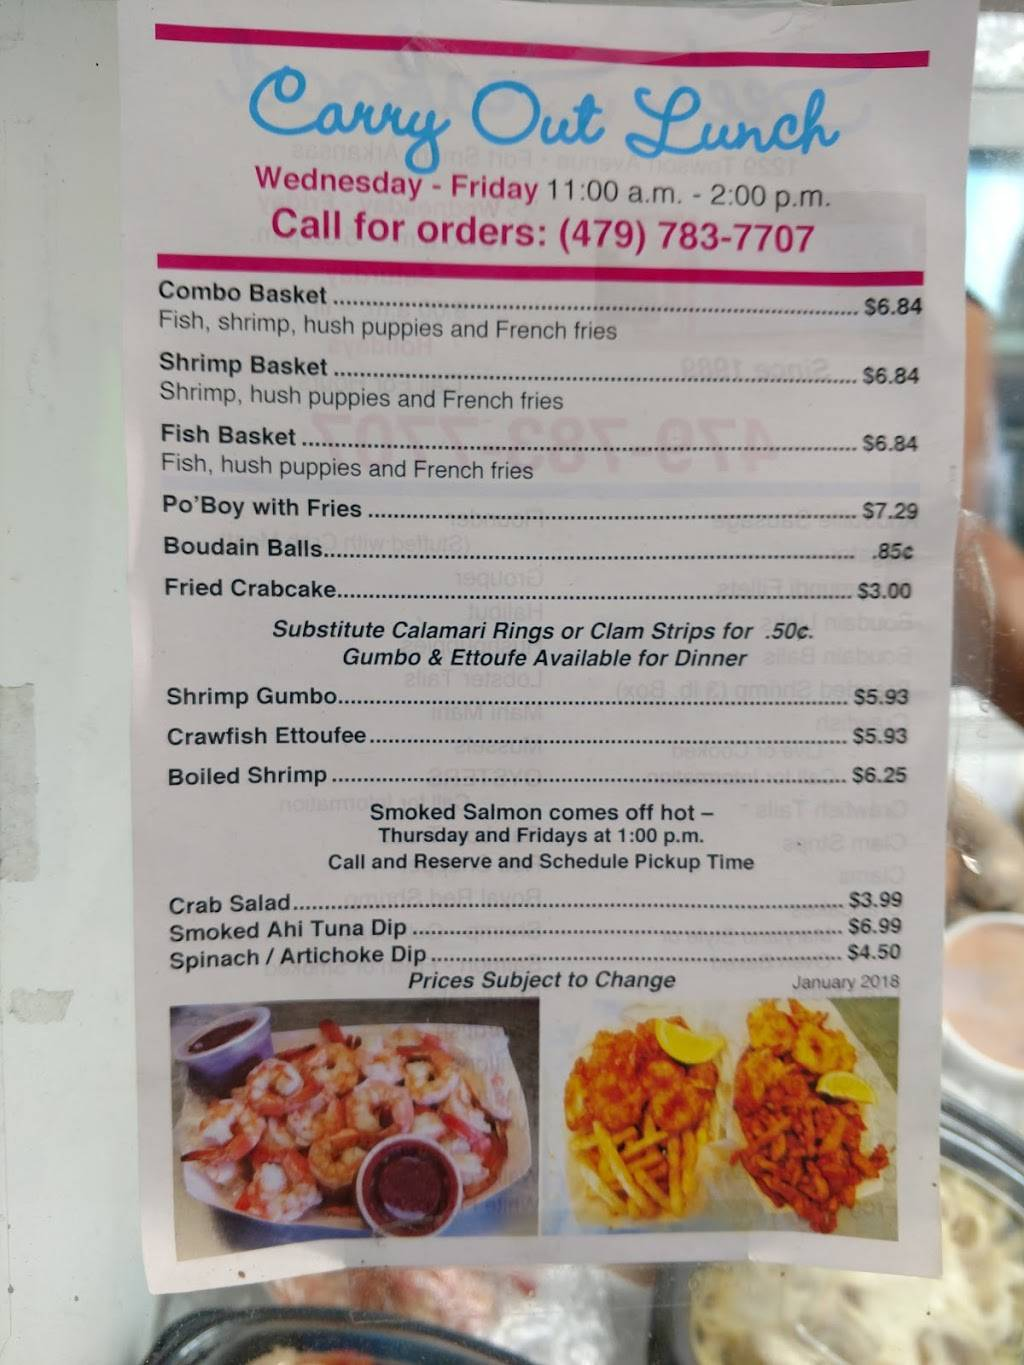 Sees Seafood | meal takeaway | 1229 Towson Ave, Fort Smith, AR 72901, USA | 4797837707 OR +1 479-783-7707